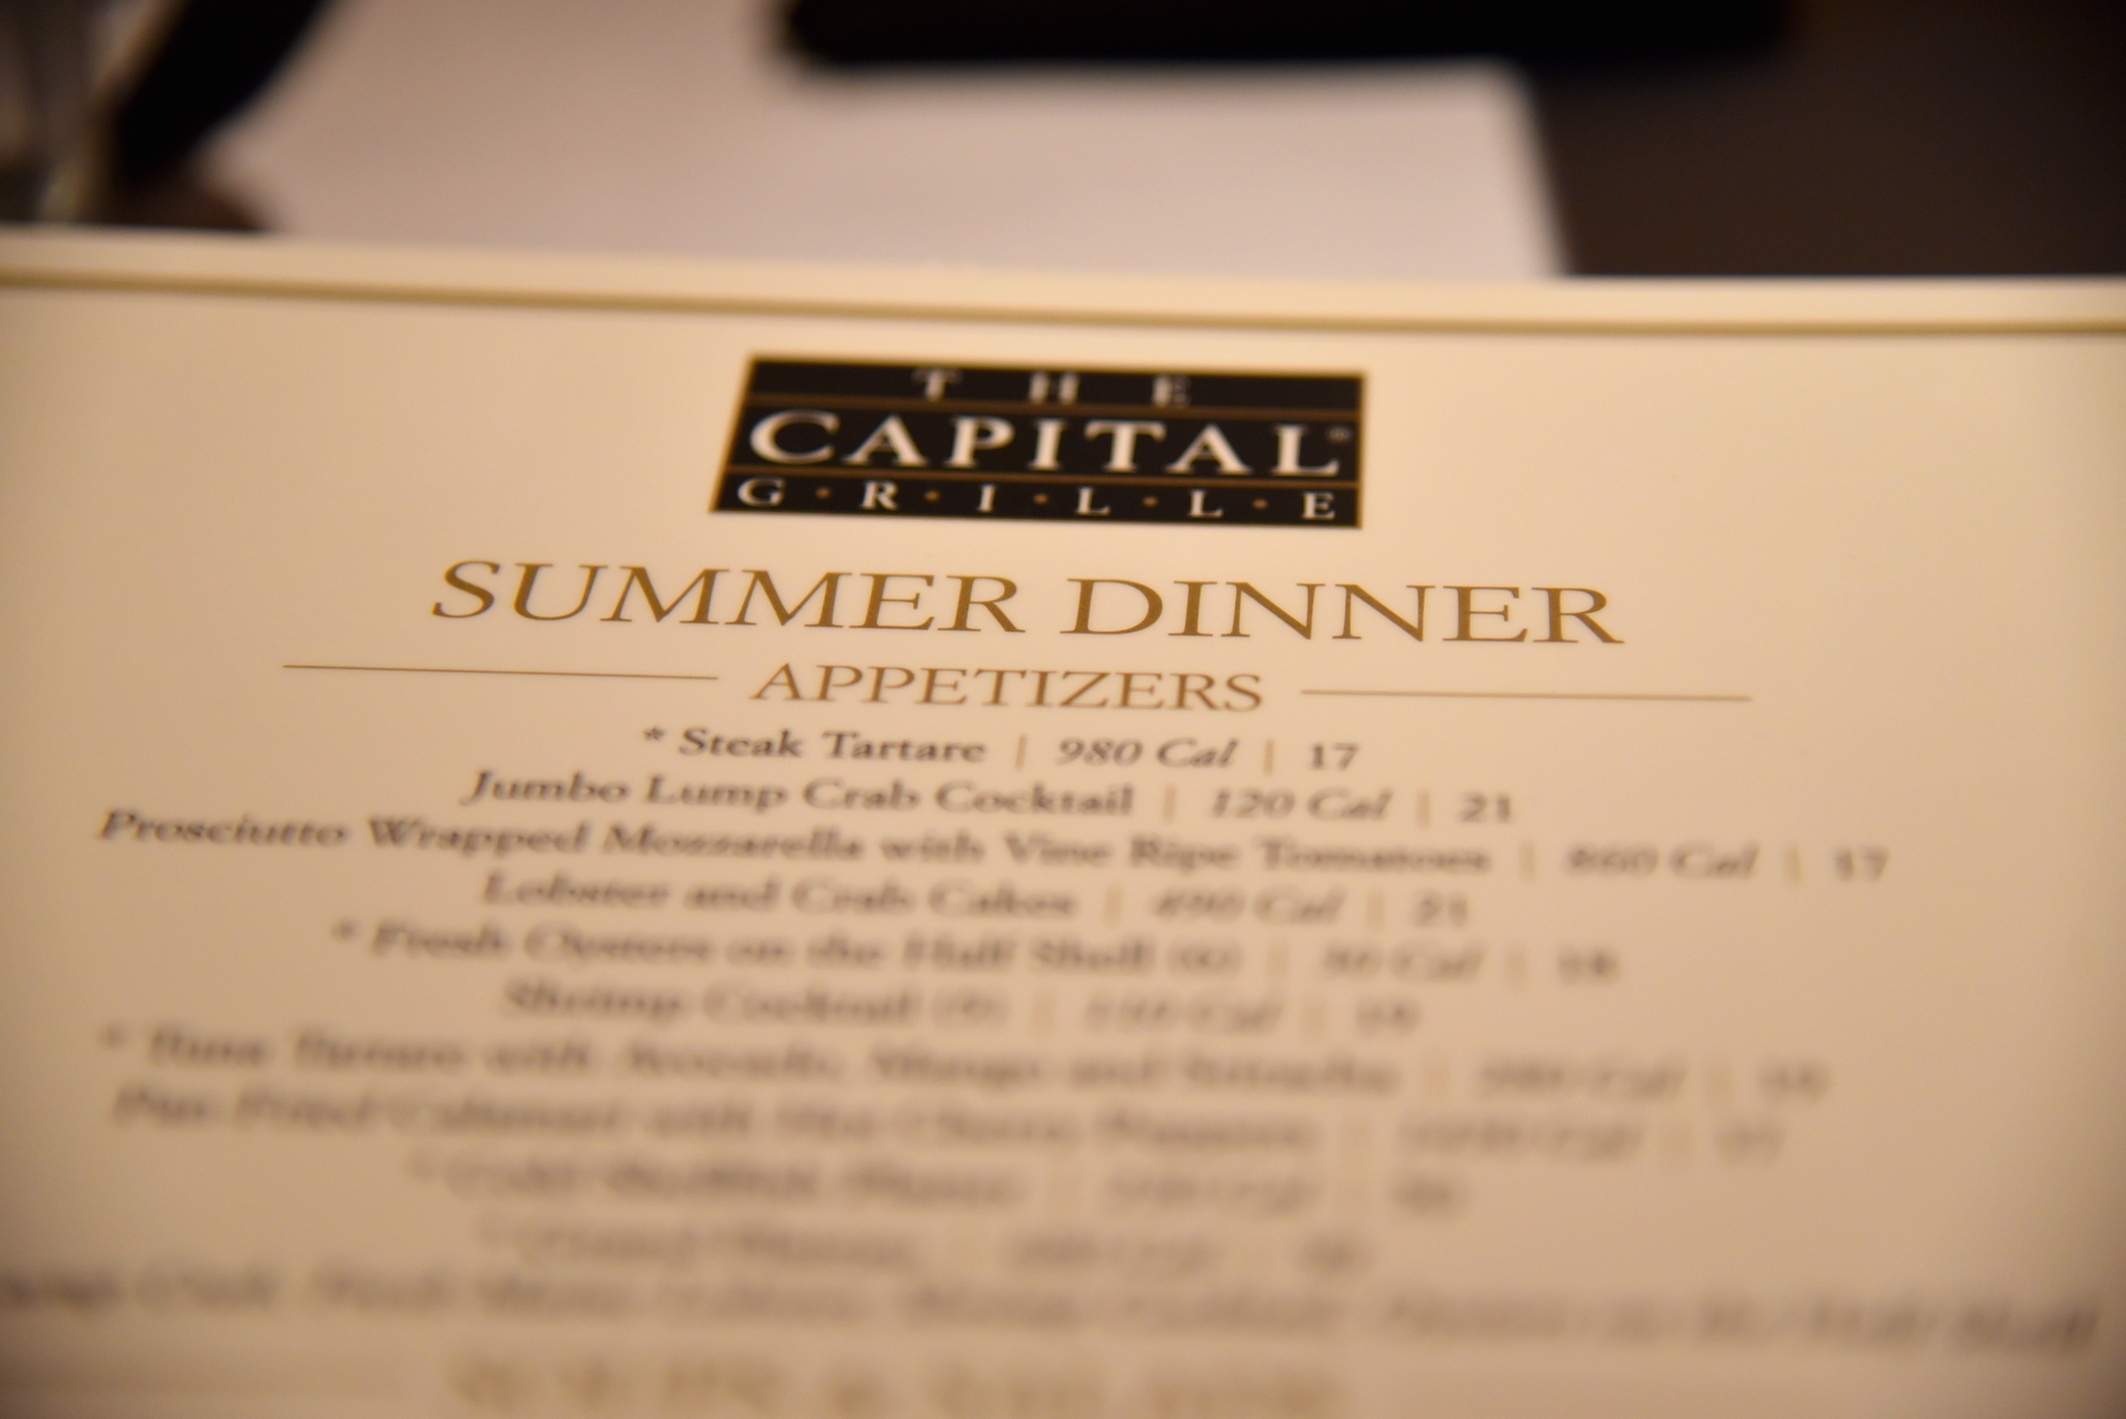 The Capital Grille NYC menu